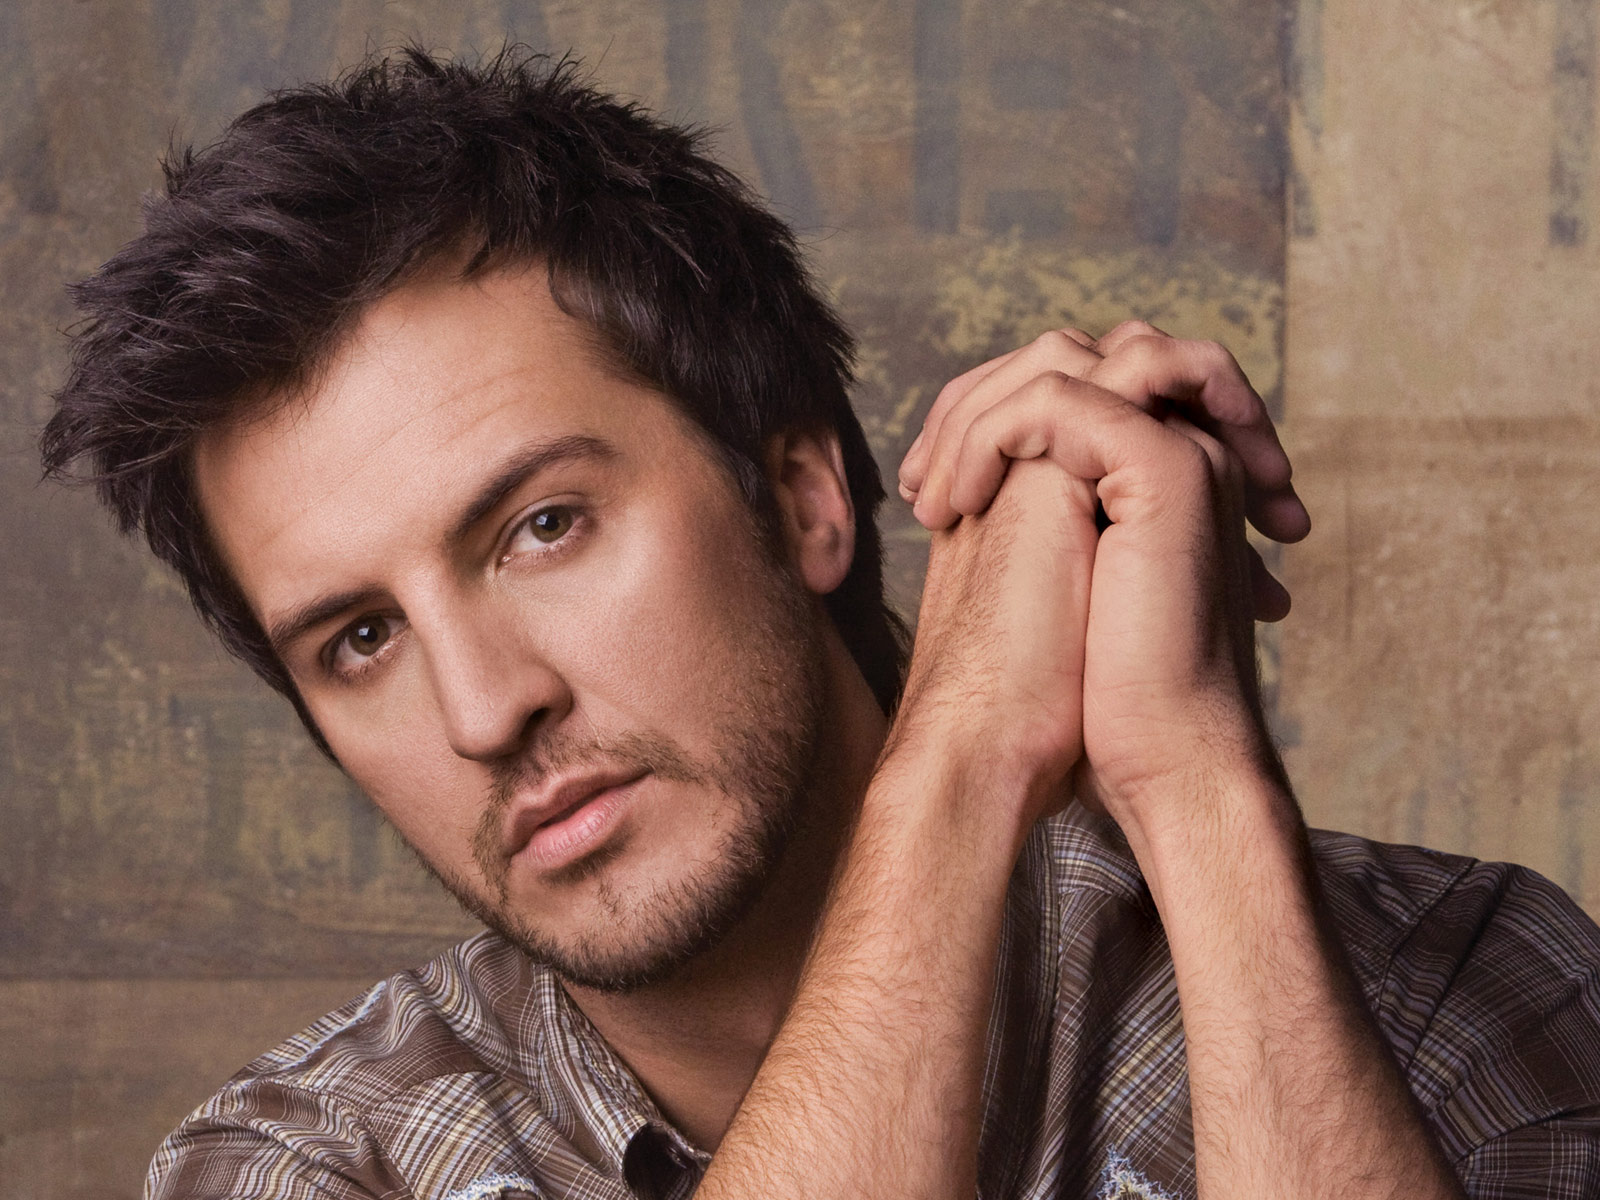 Luke Bryan Is New Female Co-Host of ACM Awards